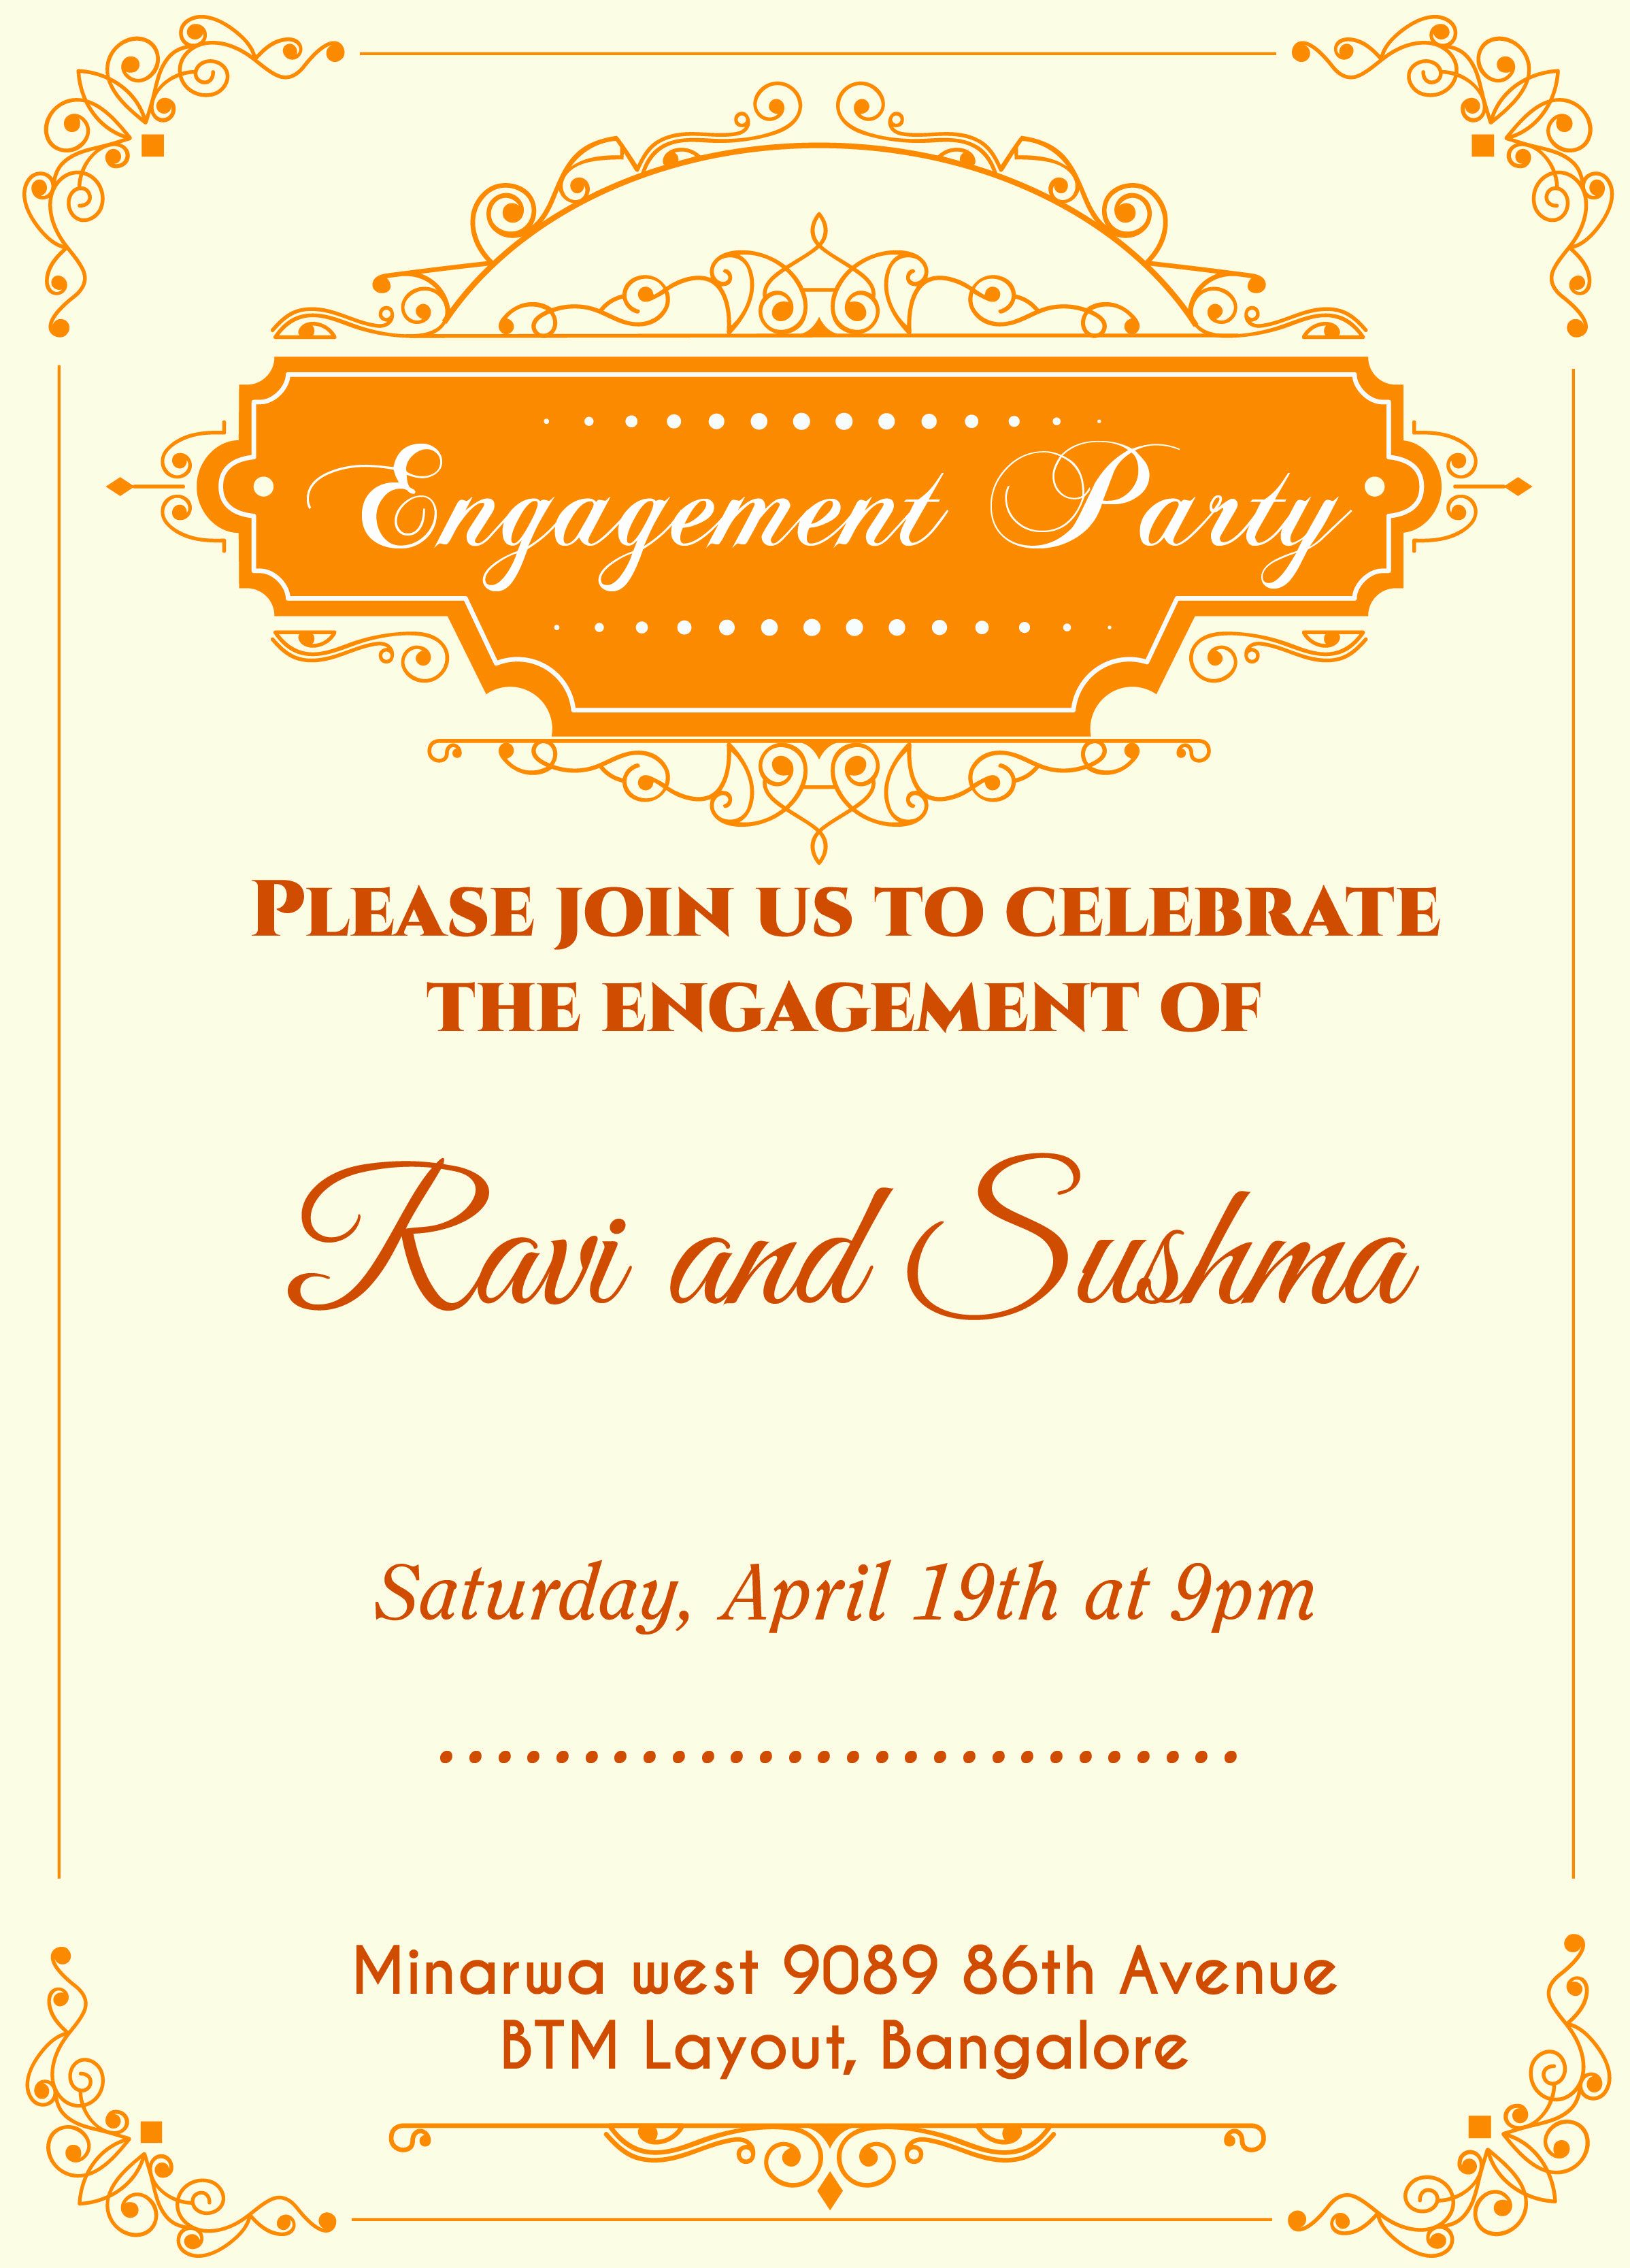 Engagment Party Invitation Wording Lovely Indian Engagement Invitation C Engagement Invitation Template Engagement Invitation Cards Free Engagement Invitations